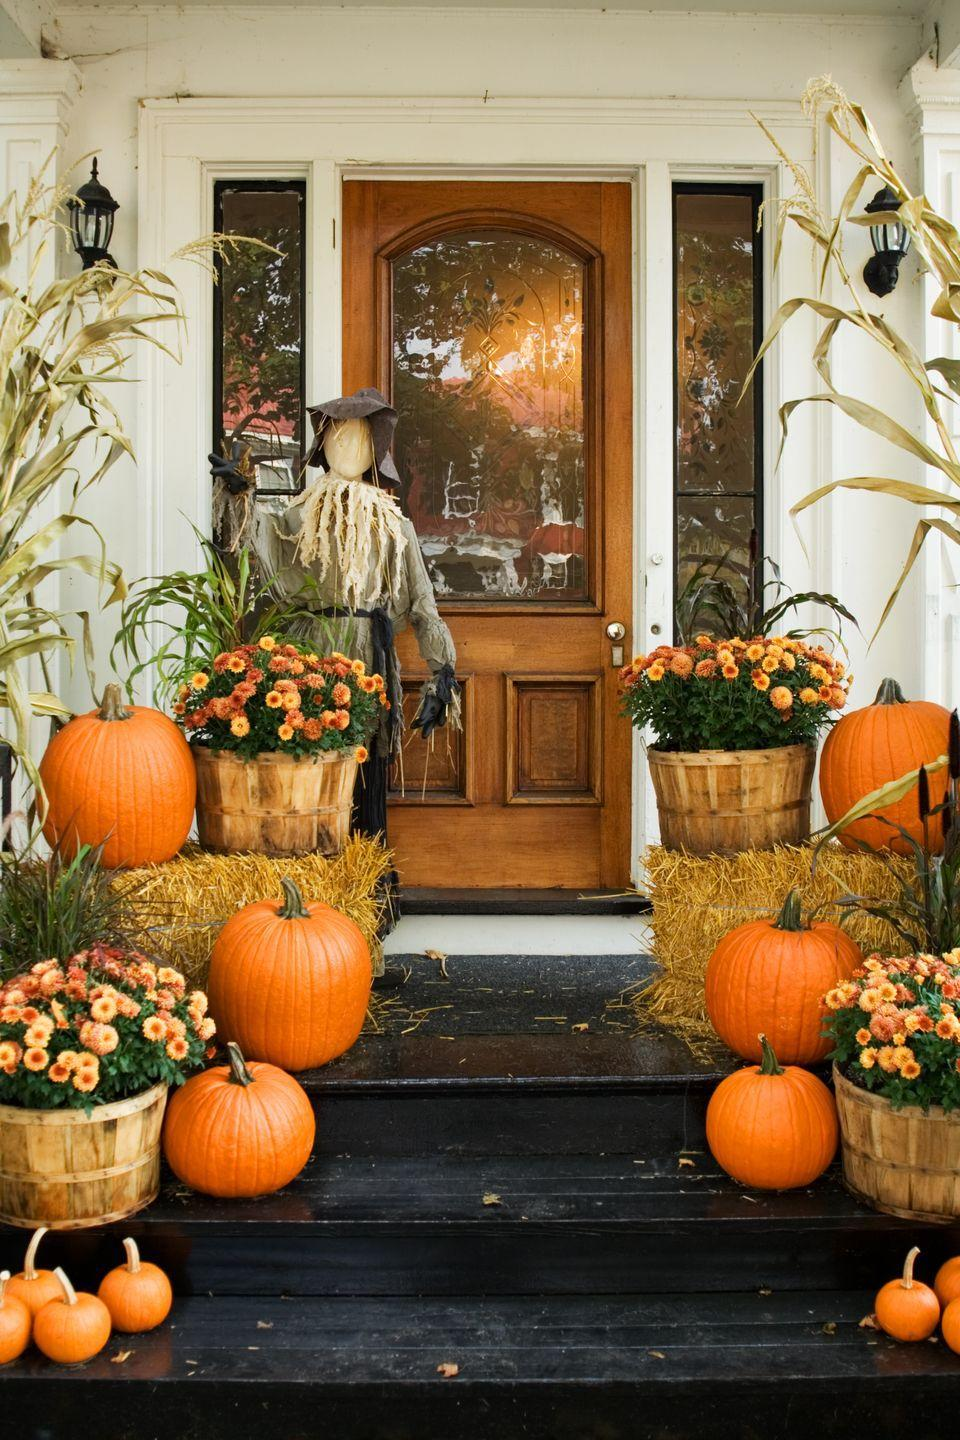 """<p>Choose either a cute or ~spooky~ aesthetic and then fashion your digs appropriately. Grab a scarecrow, decorative gourds, and maybe even some hay to elevate your porch. </p><p><strong>More:</strong> <a href=""""https://www.townandcountrymag.com/leisure/arts-and-culture/news/g2902/halloween-home-decor-ideas/"""" rel=""""nofollow noopener"""" target=""""_blank"""" data-ylk=""""slk:18 Halloween Decorations for the Chicest Home"""" class=""""link rapid-noclick-resp"""">18 Halloween Decorations for the Chicest Home</a></p><p><strong>More: </strong><a href=""""https://www.townandcountrymag.com/leisure/arts-and-culture/news/g1527/elegant-ways-to-decorate-halloween/"""" rel=""""nofollow noopener"""" target=""""_blank"""" data-ylk=""""slk:19 Spooky Halloween Decoration Ideas That Are So Chic It's Scary"""" class=""""link rapid-noclick-resp"""">19 Spooky Halloween Decoration Ideas That Are So Chic It's Scary</a></p>"""